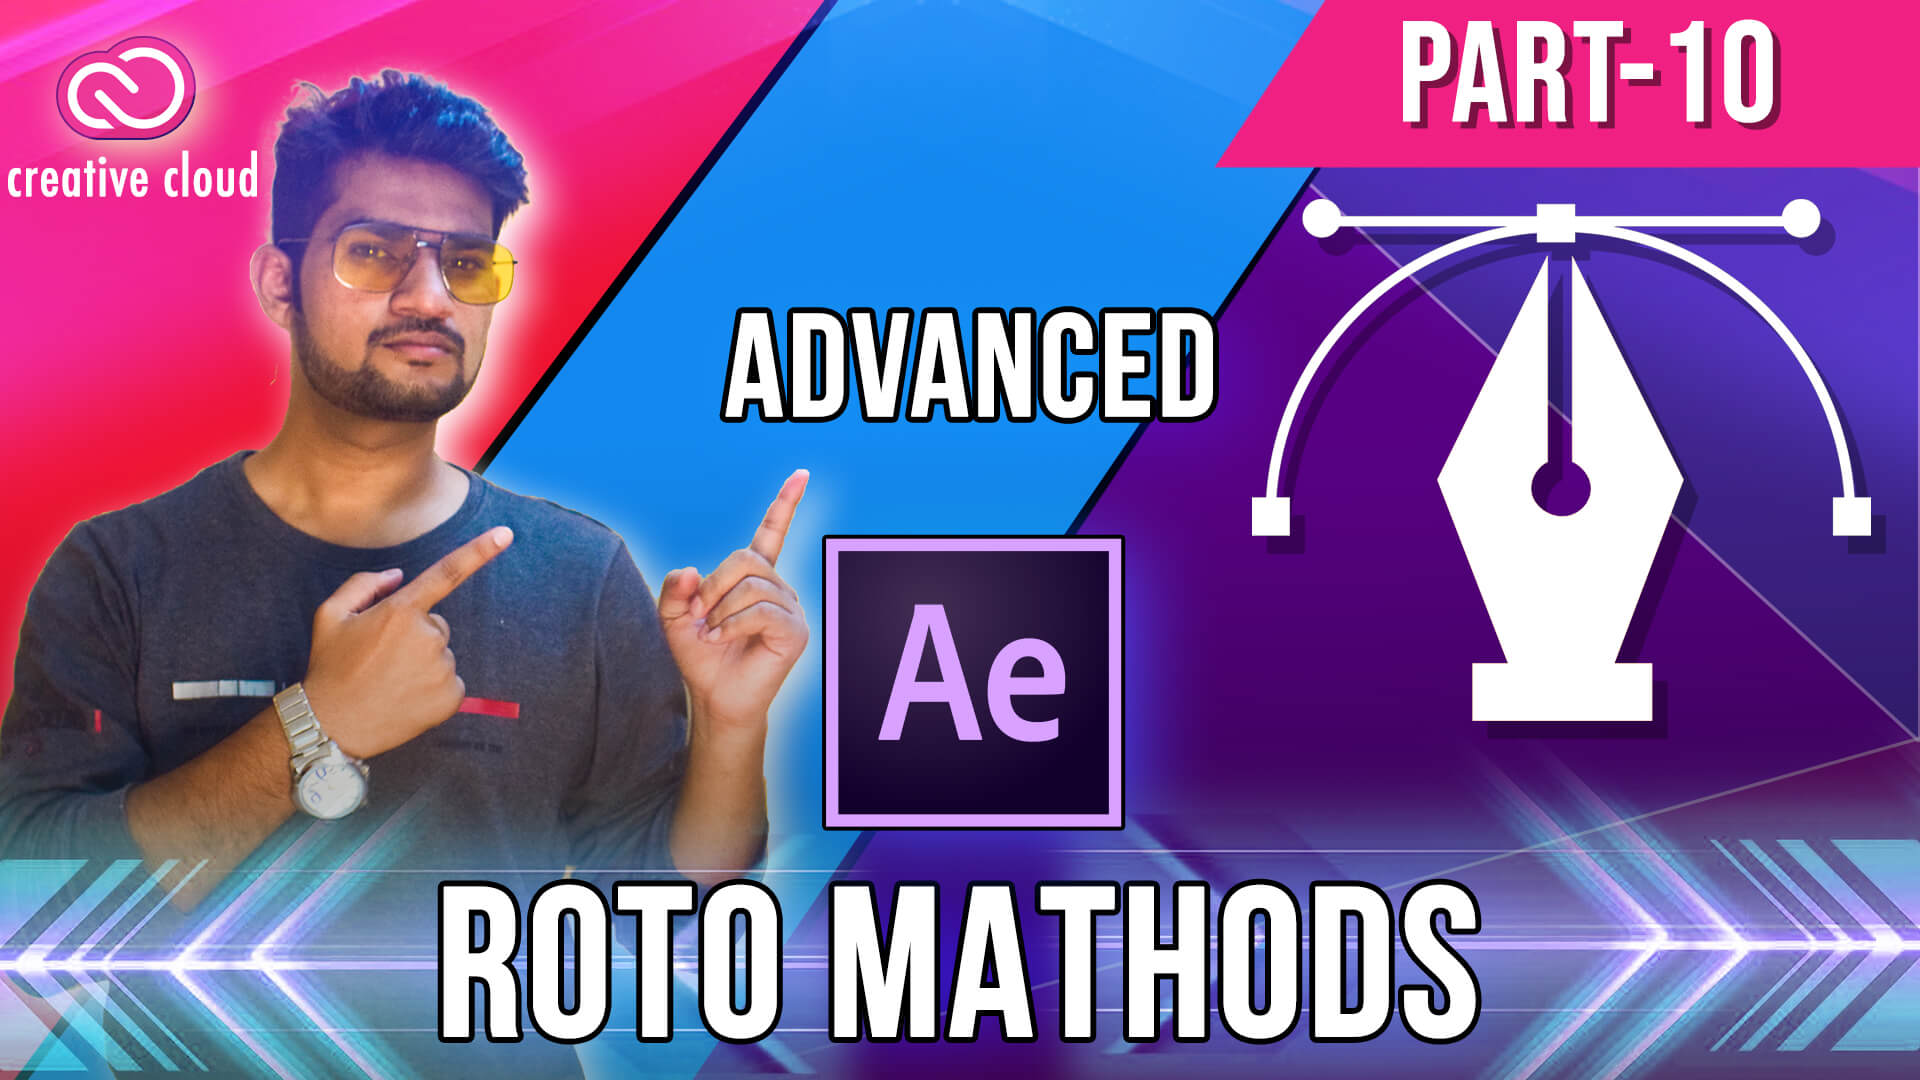 10 Advanced roto mathods